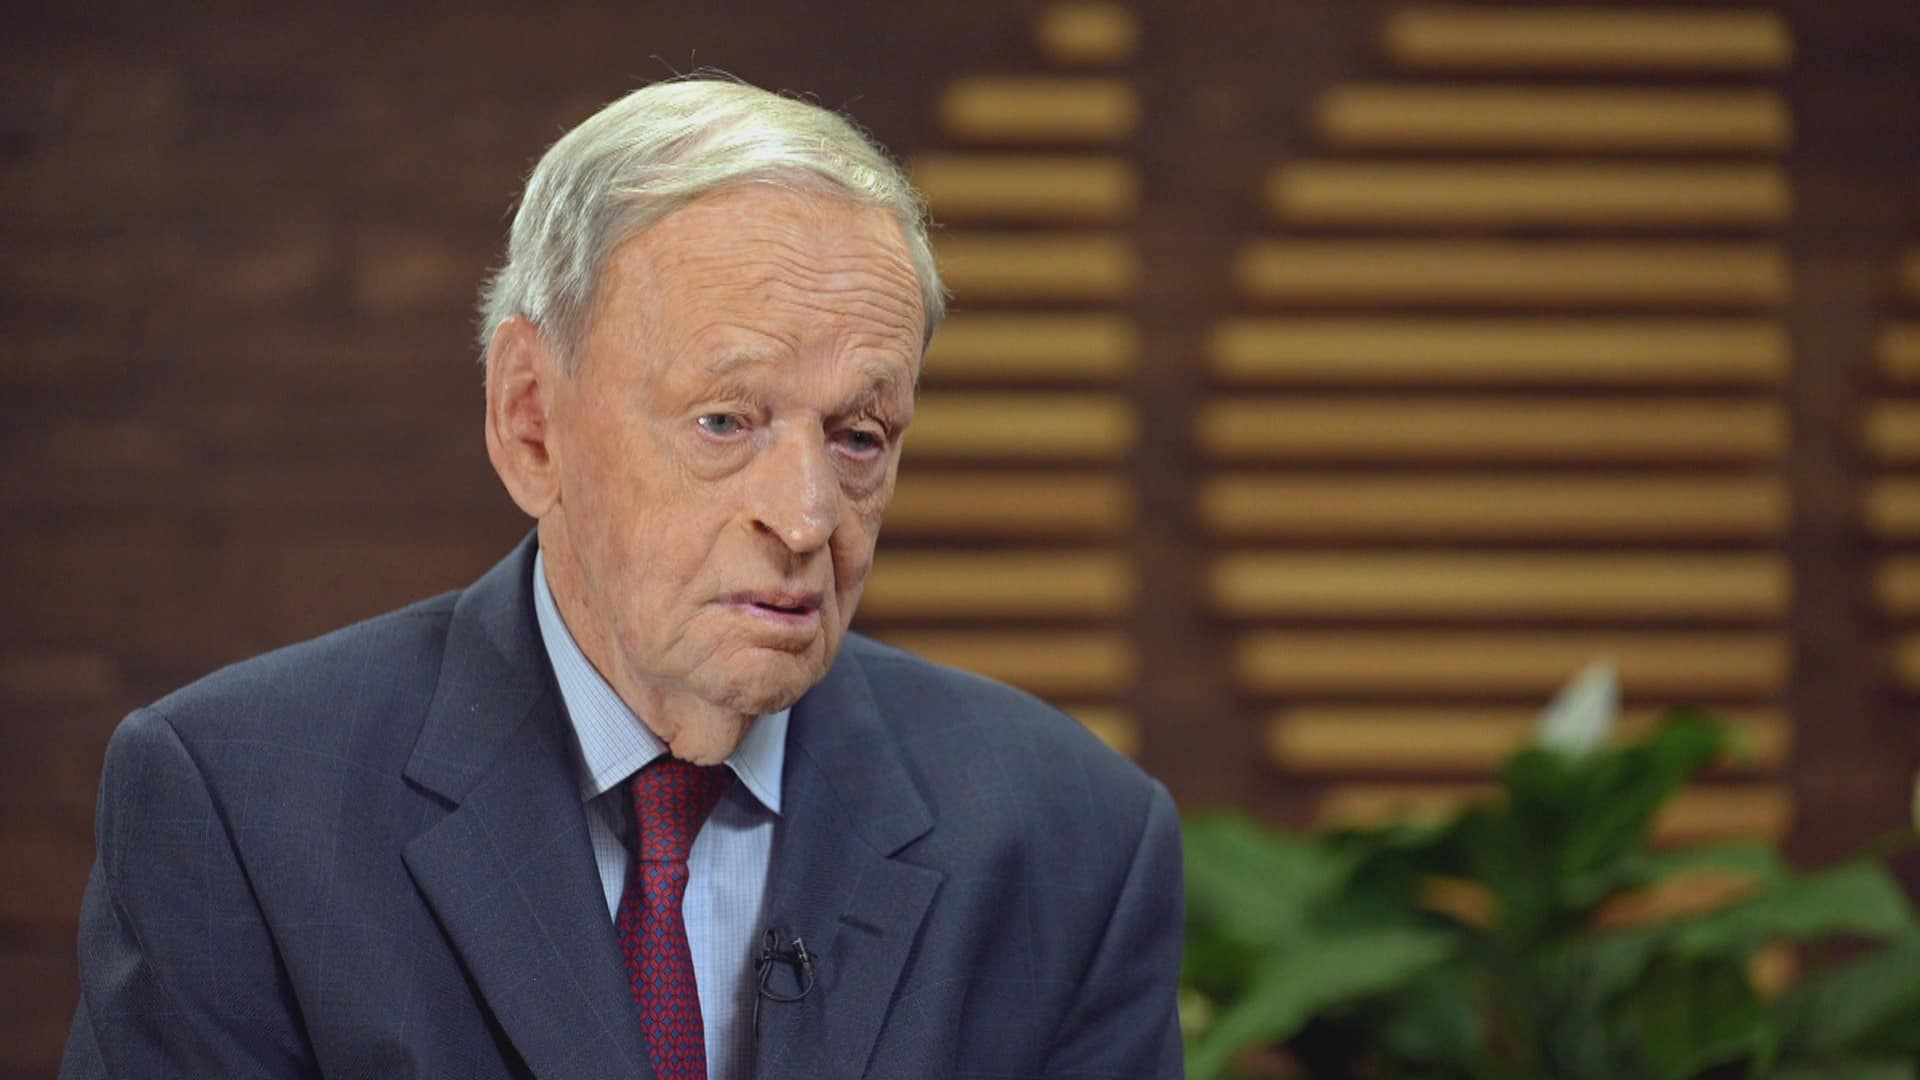 Former PM Chrétien reflects on difficulties of forming a cabinet